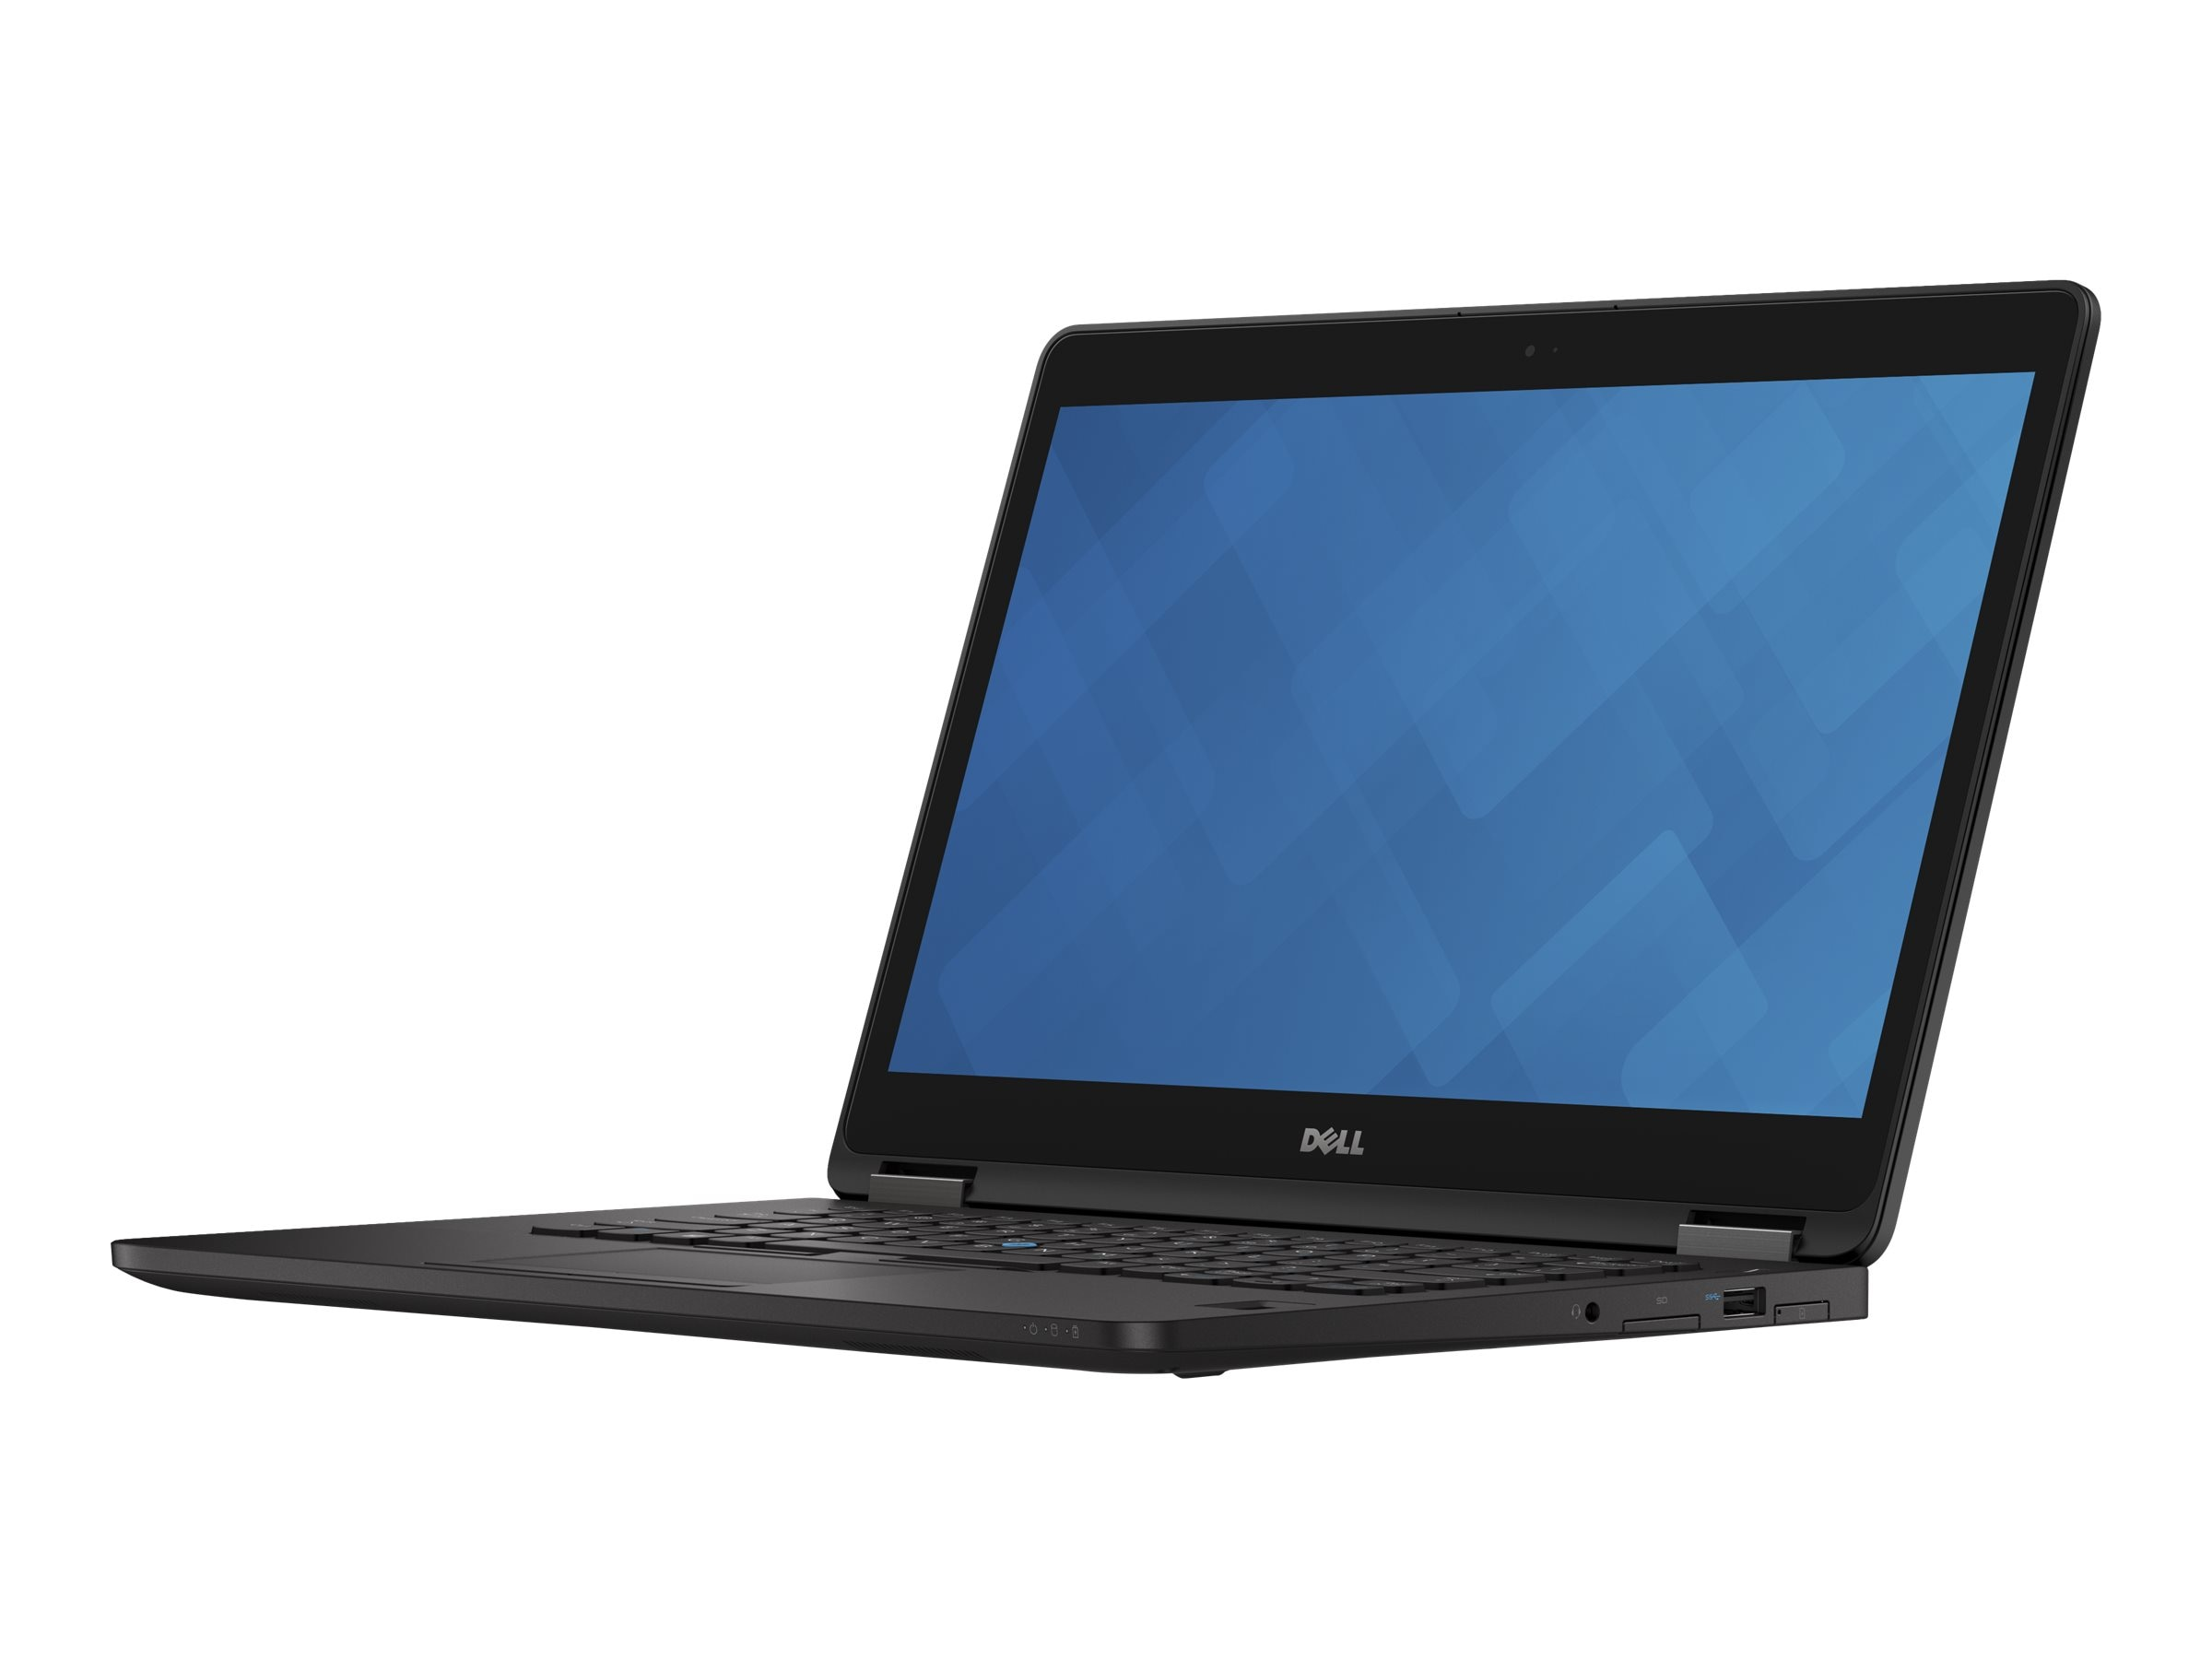 Dell Latitude E7470 Core i7-6600U 2.6GHz 8GB 256GB SSD ac BT WC 4C 14 FHD W7P64-W10P